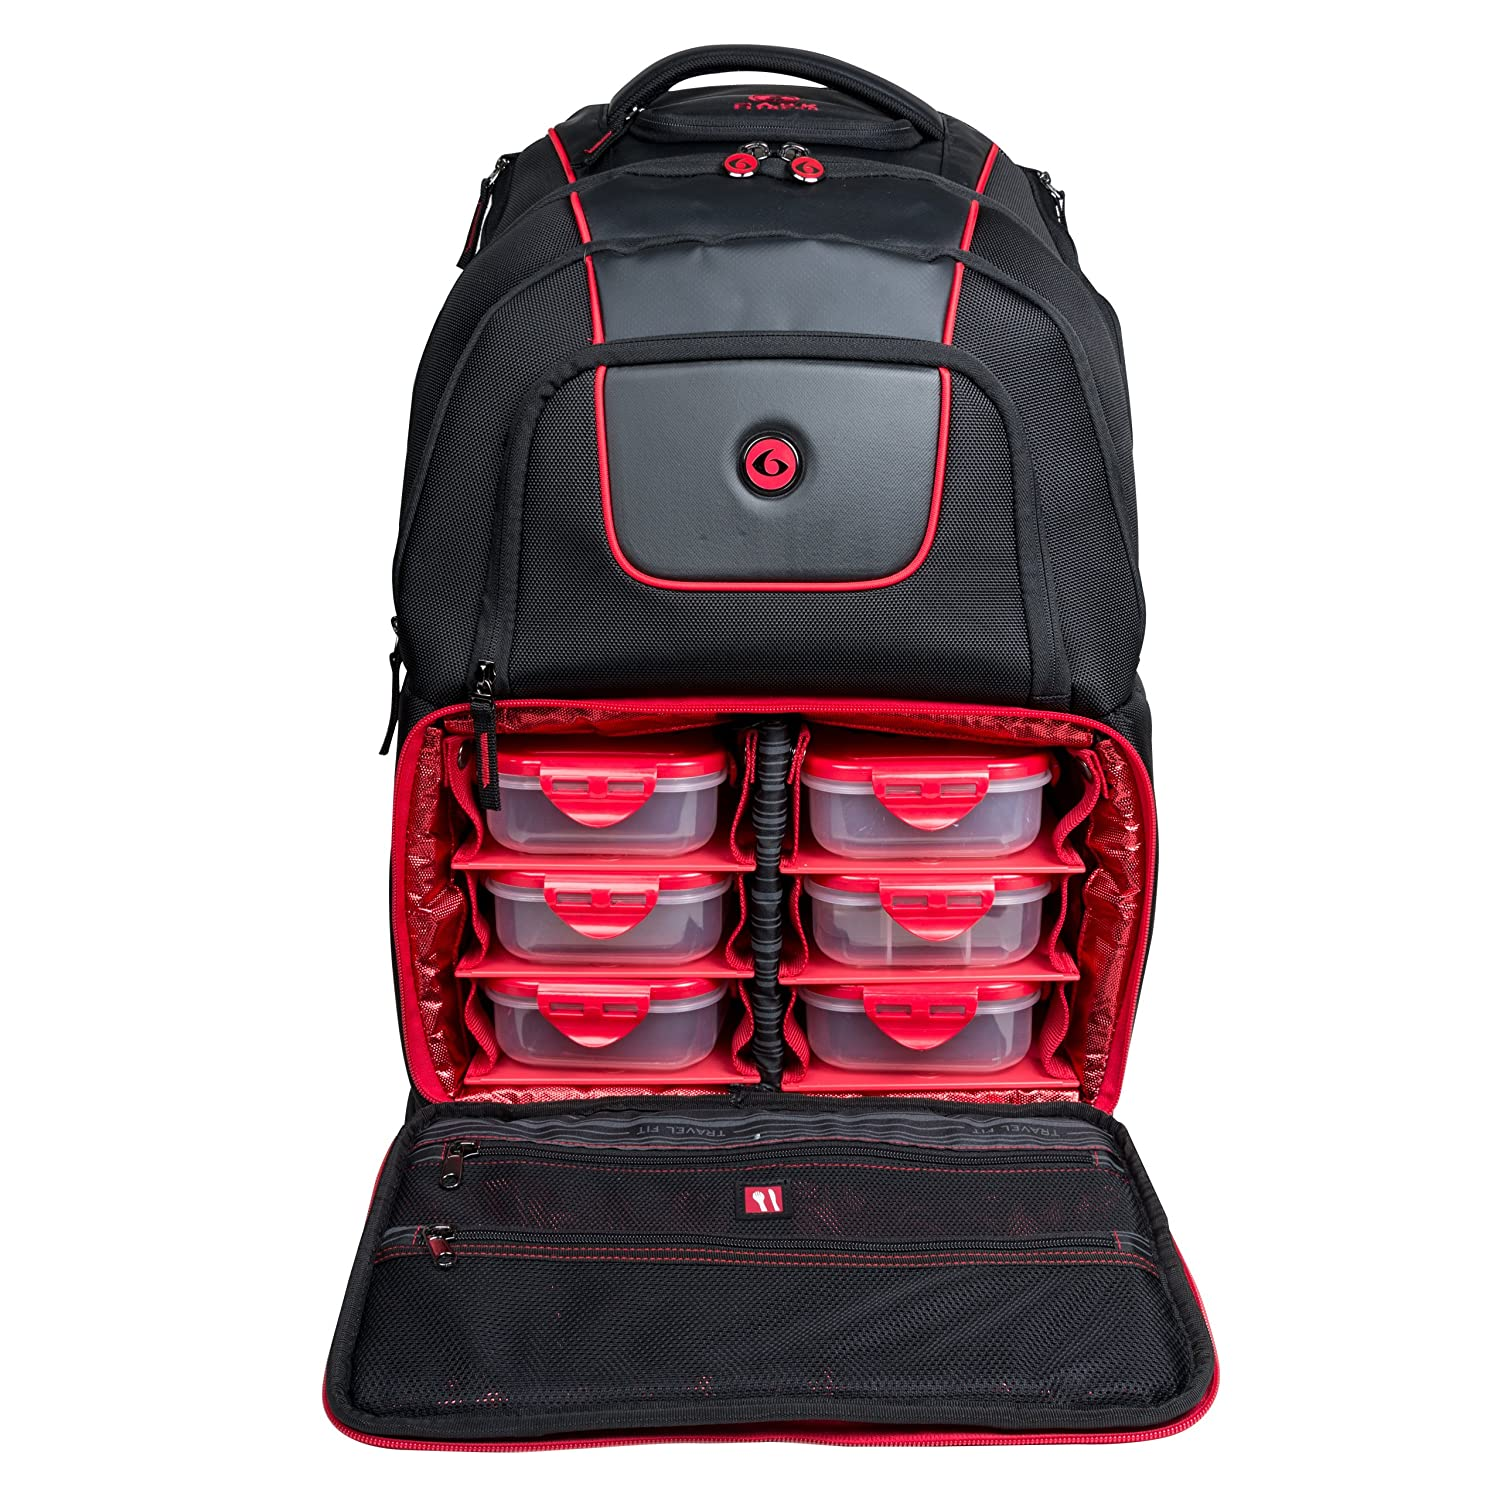 4773dcdb8ecf 6Pack Fitness - Voyager 500 Backpack  Amazon.co.uk  Health   Personal Care